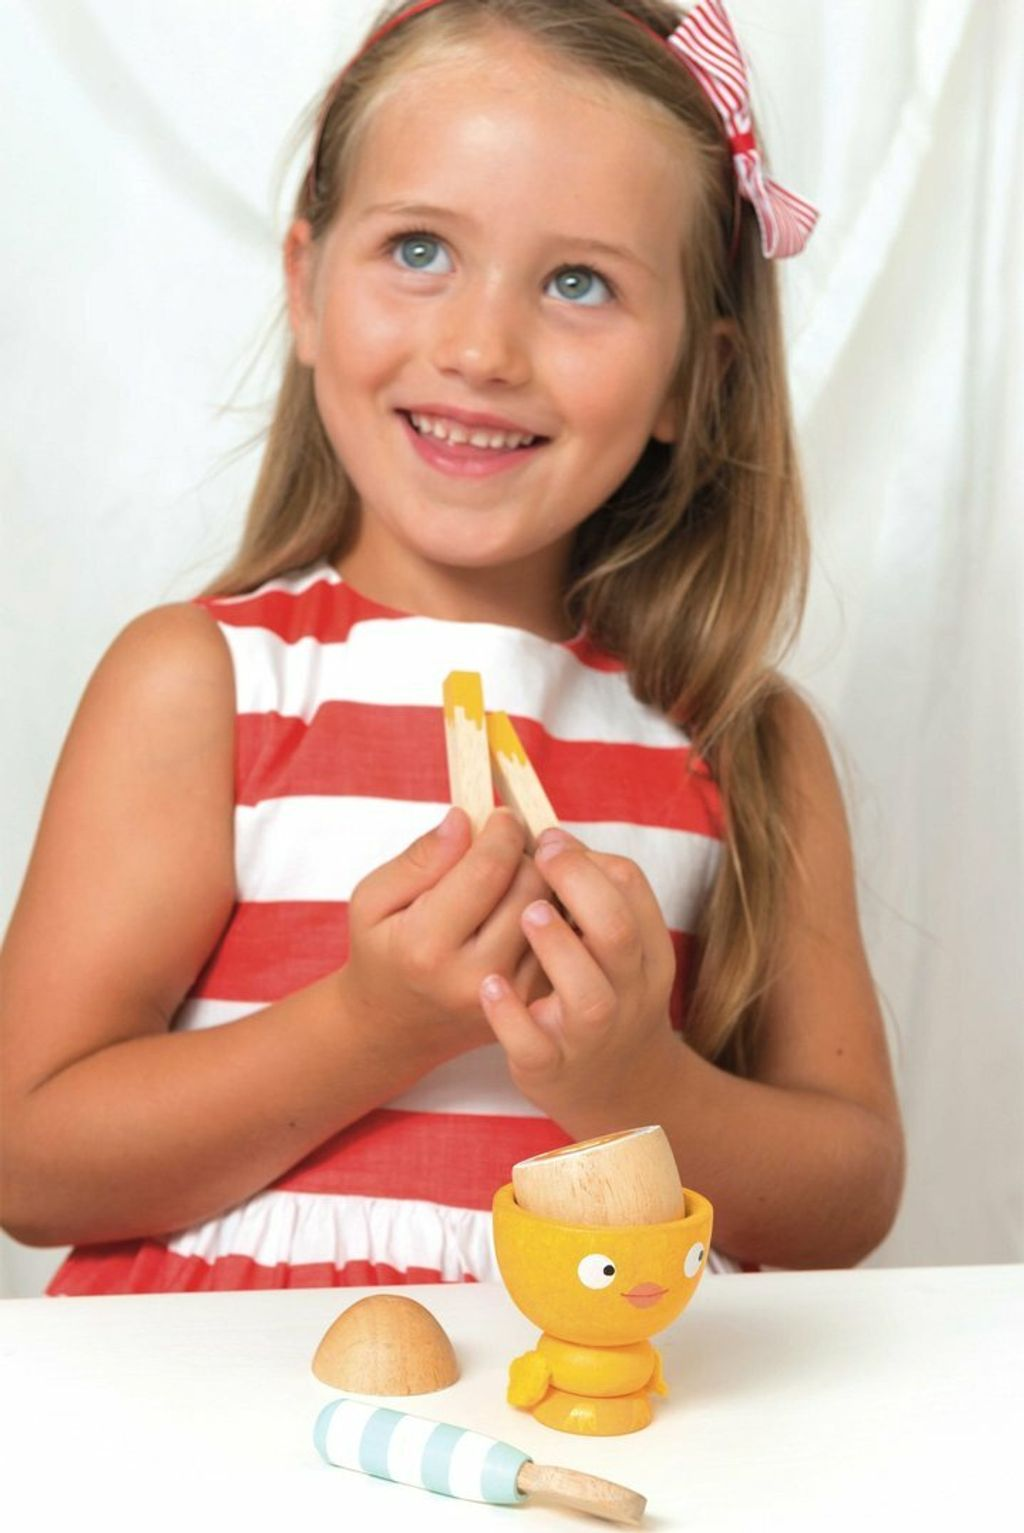 TV315-Egg-Cup-Soldiers-Toast-Breakfast-Wooden-Toy-Girl_720x1078 5.jpg